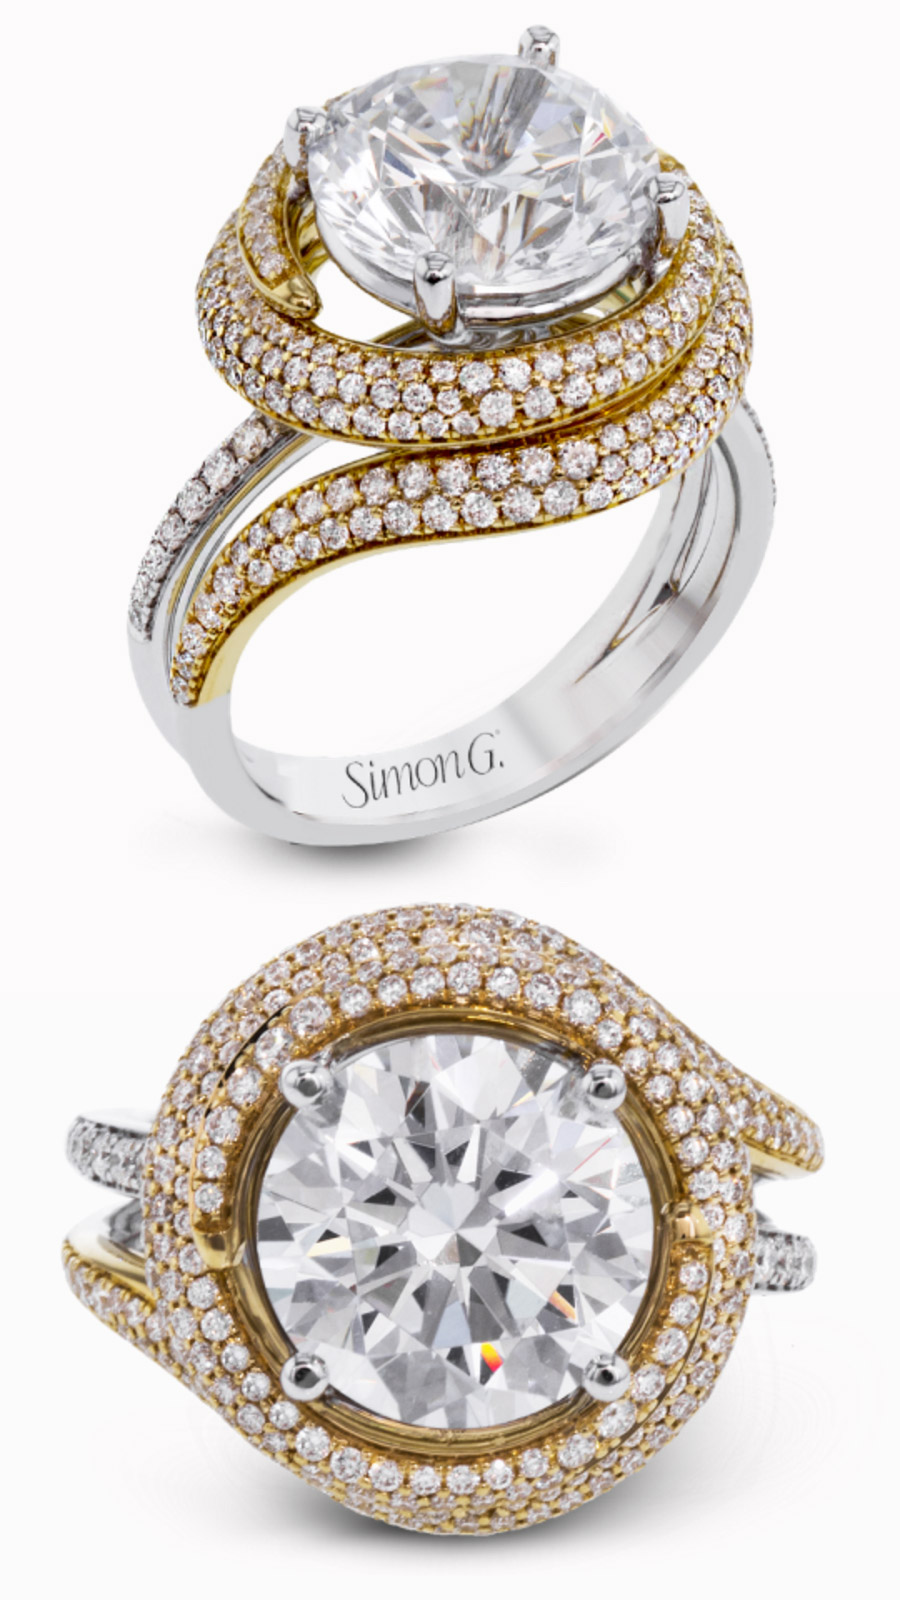 simon g gorgeous diamond engagement ring wedding band set dr373 organic yellow gold halo